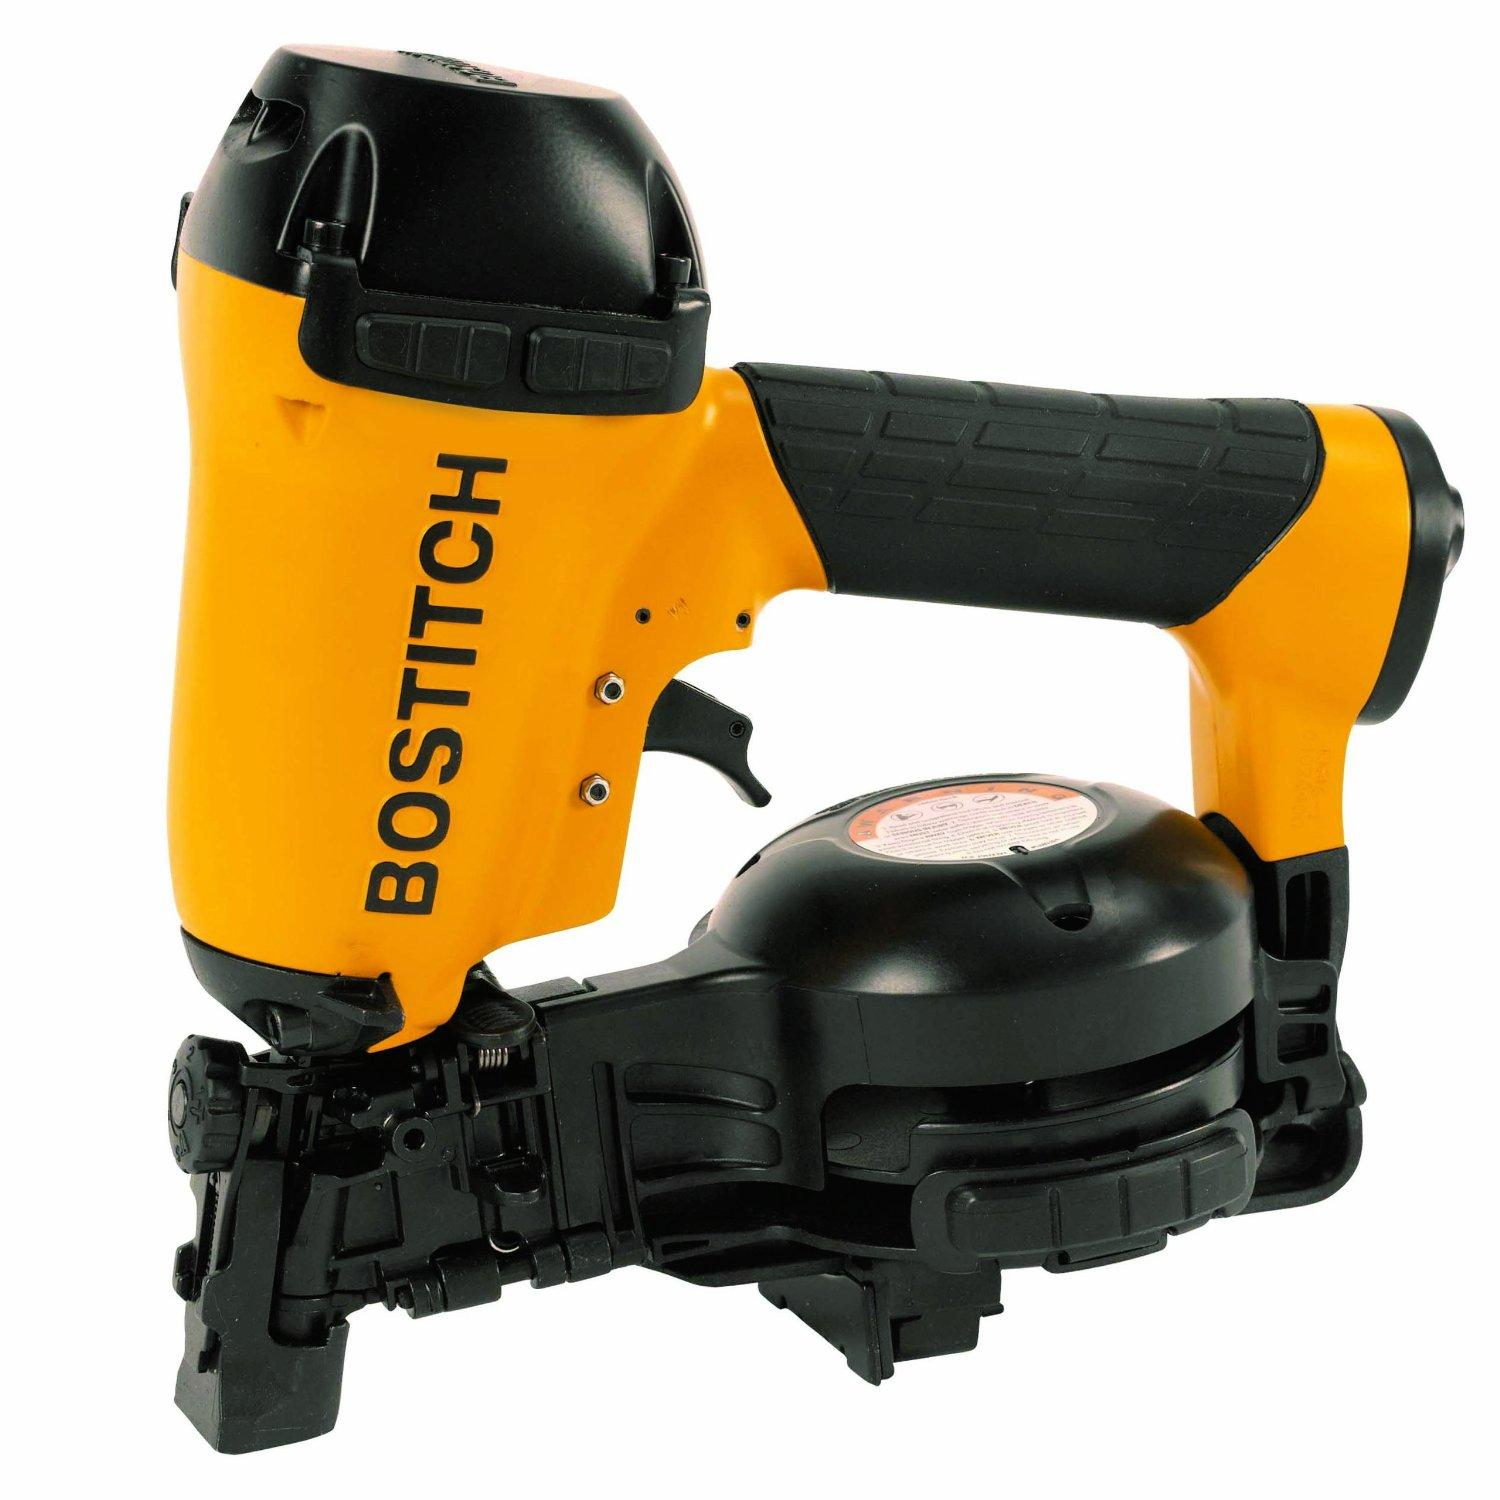 Bostitch Coil Roofing Nailer - 15 Degree